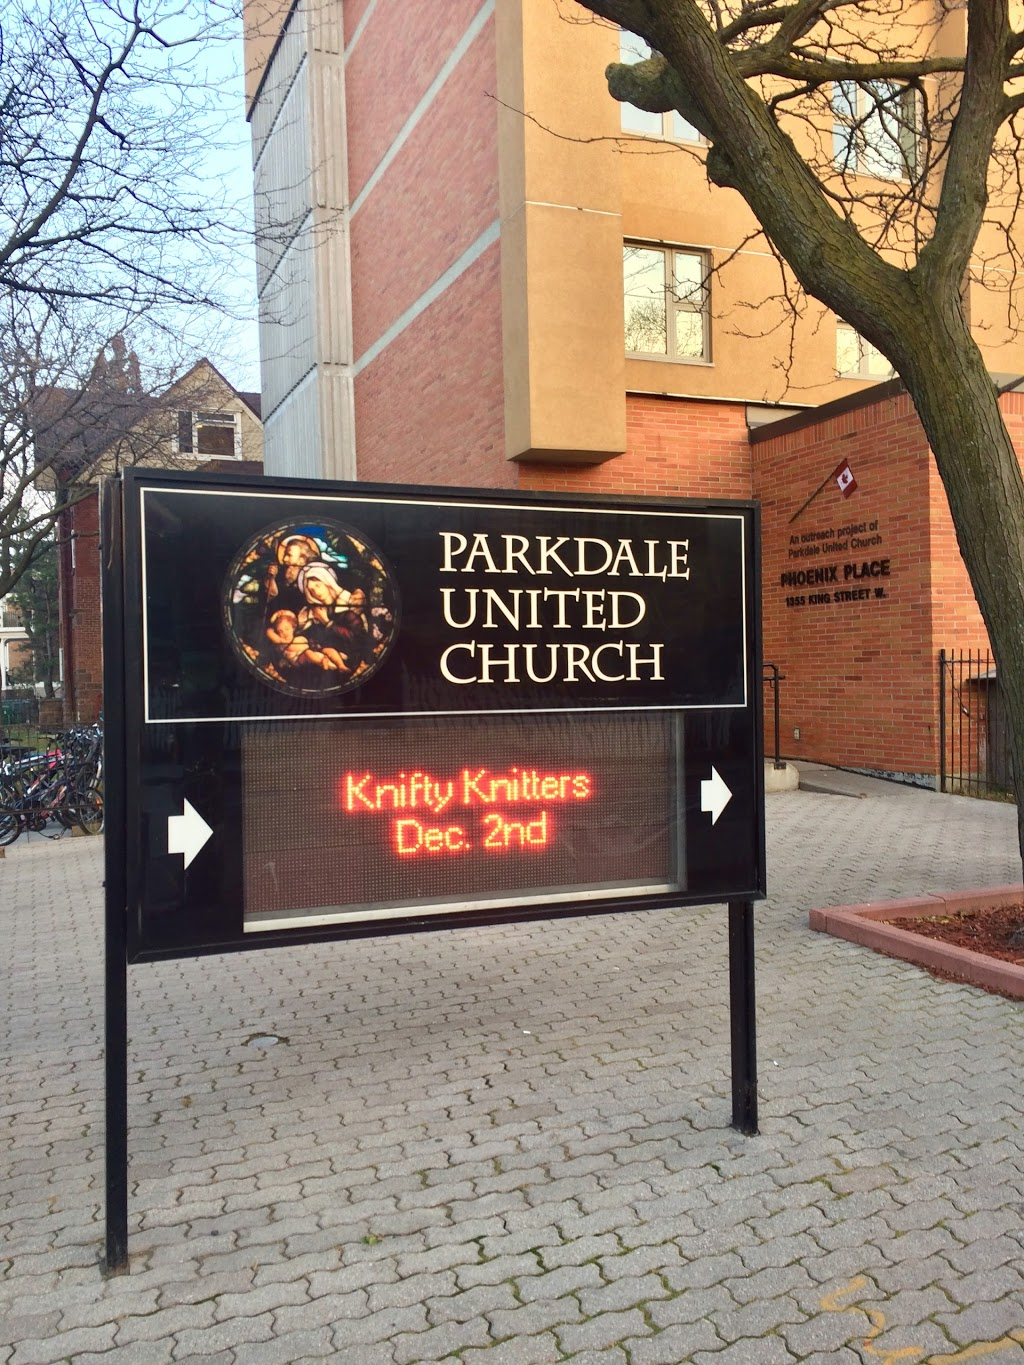 Parkdale United Church & Parkdale United Church Foundation | church | 171 Dunn Ave, Toronto, ON M6K 2R8, Canada | 4165321191 OR +1 416-532-1191